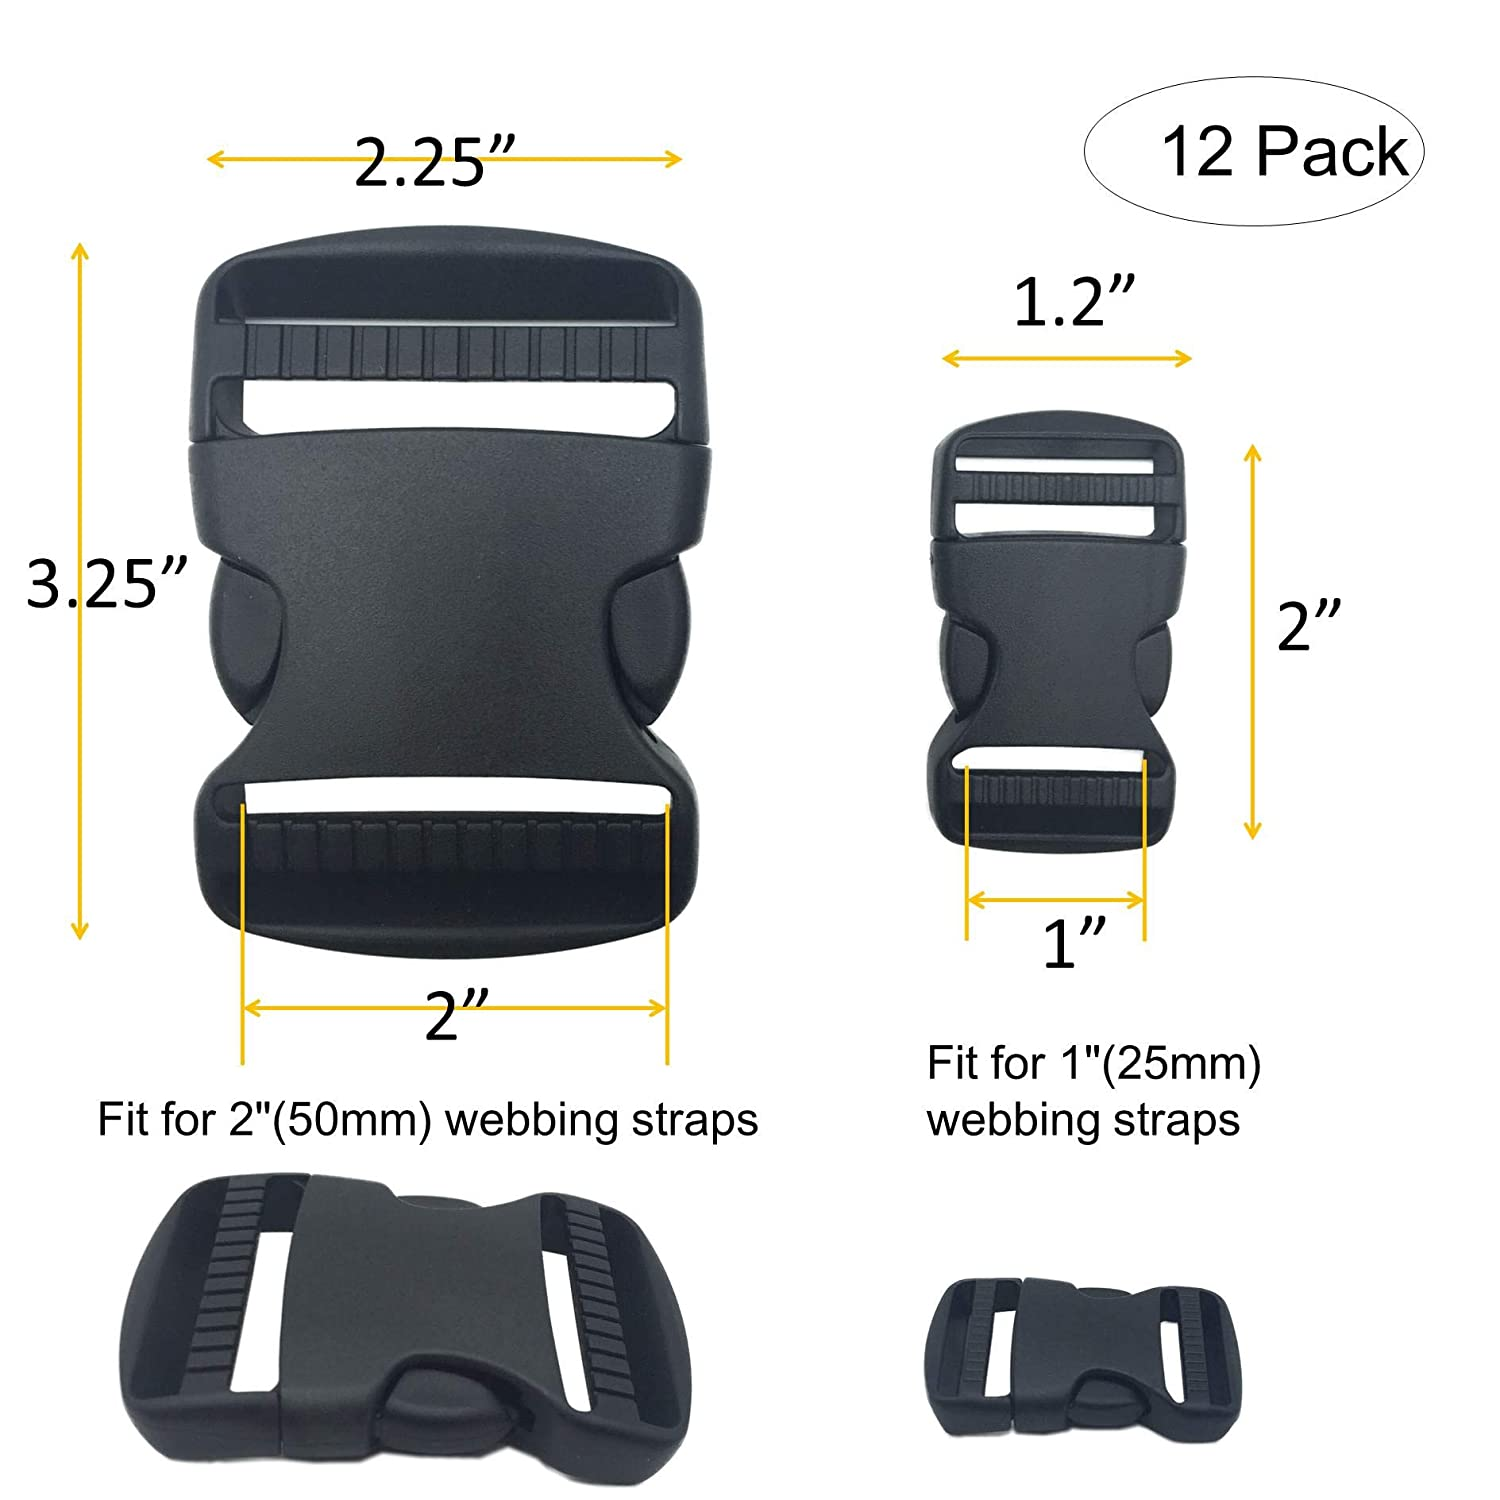 Black 5 Set 1.25 Flat Buckles Dual Adjustable Buckles and Tri-Glide Slides Quick Side Release Buckle for Luggage Straps Pet Collar Backpack Repairing